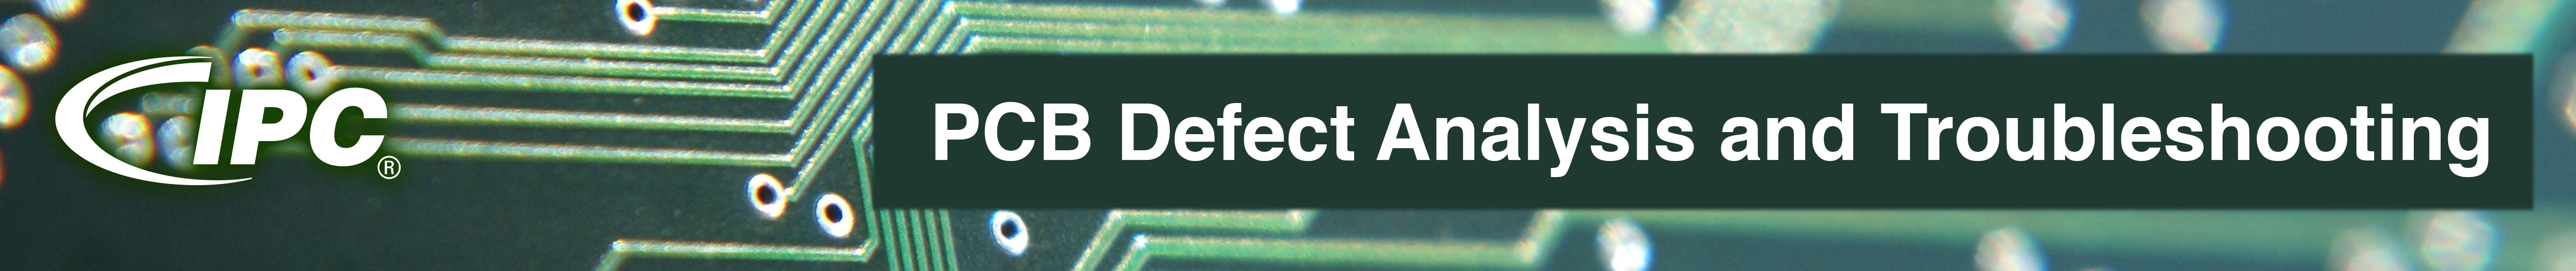 PCB Defect Analysis and Troubleshooting